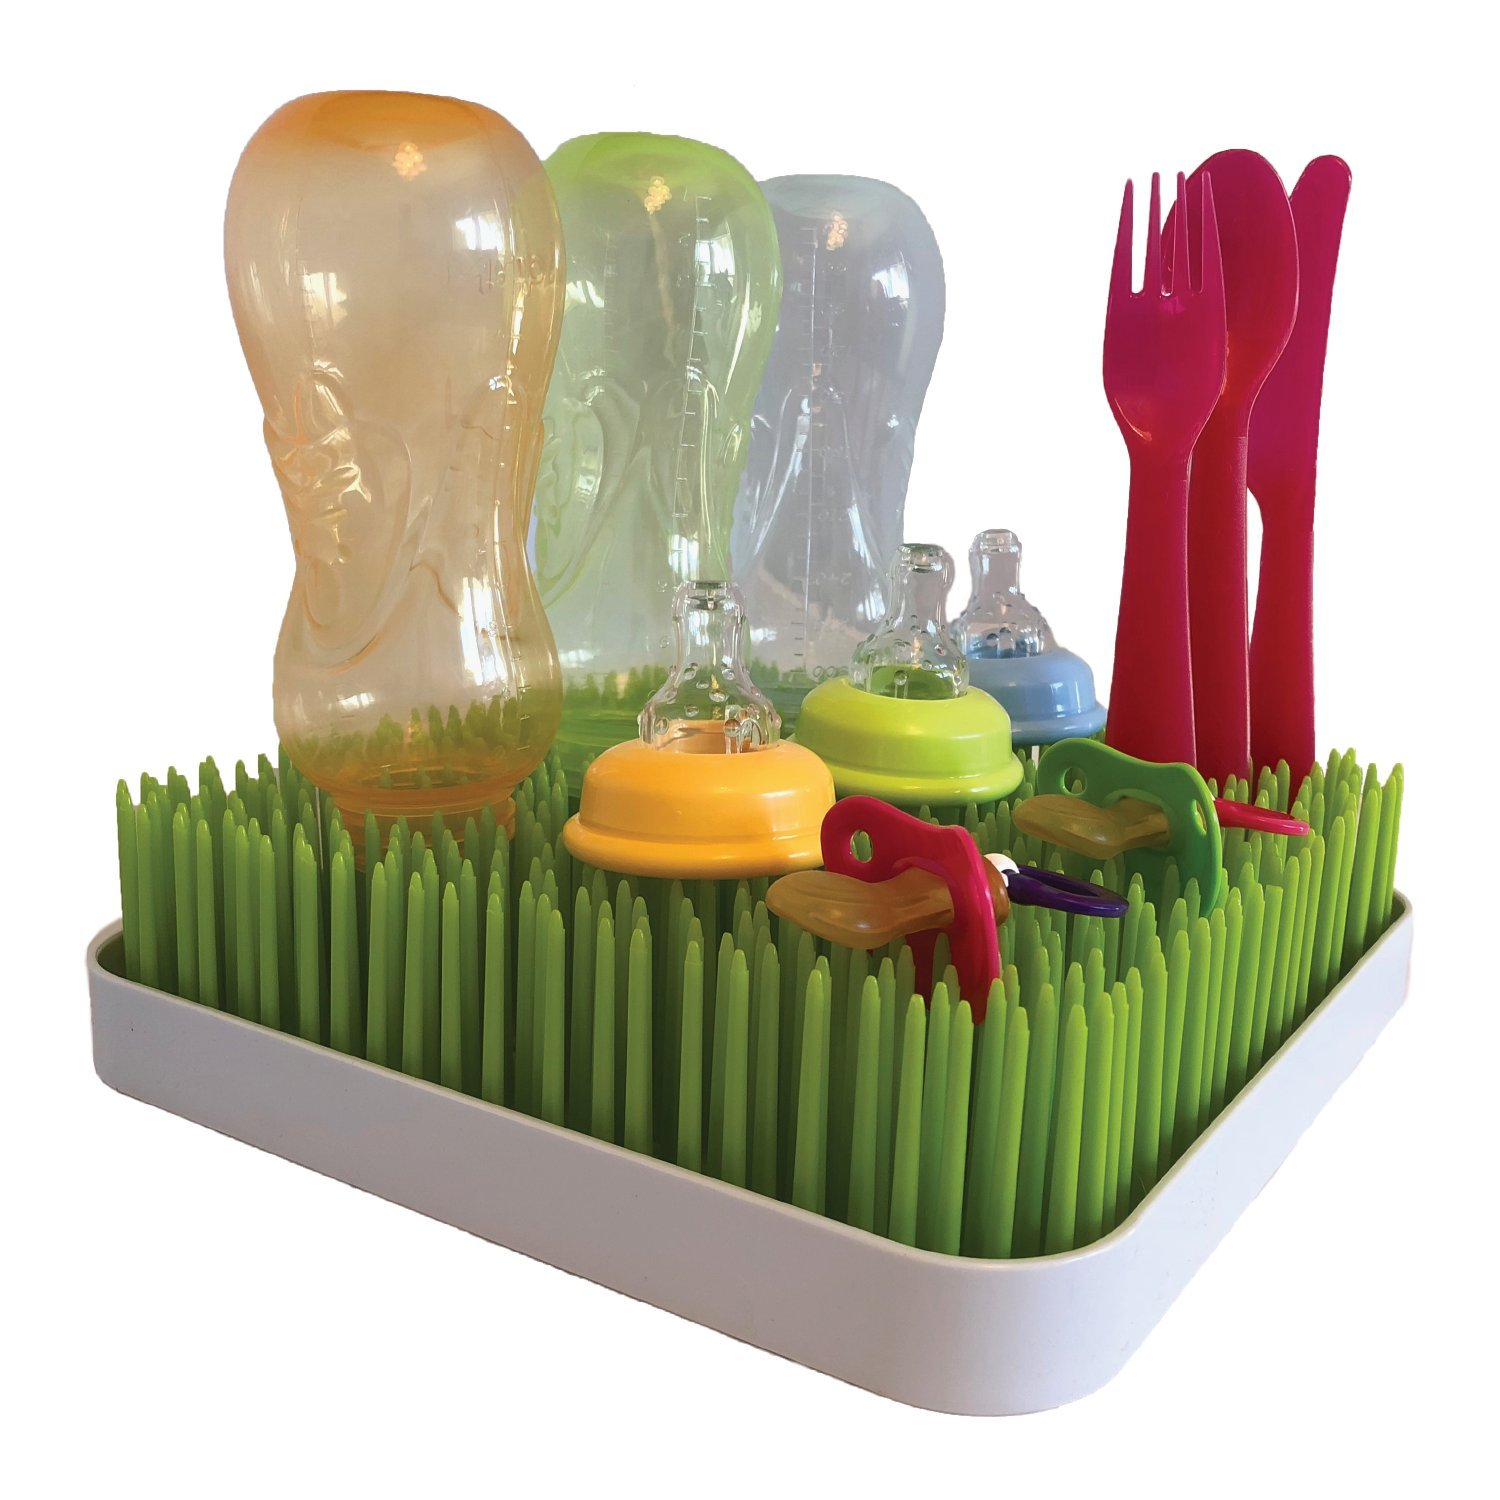 Kuddly Kids Baby Bottle Drying Rack- Our BPA FREE Countertop Dryer Rack Makes sure all your Baby Bottles, Sippy Cups, Nipples and Baby Dishes are Dried Sanitarily by Kuddly Kids